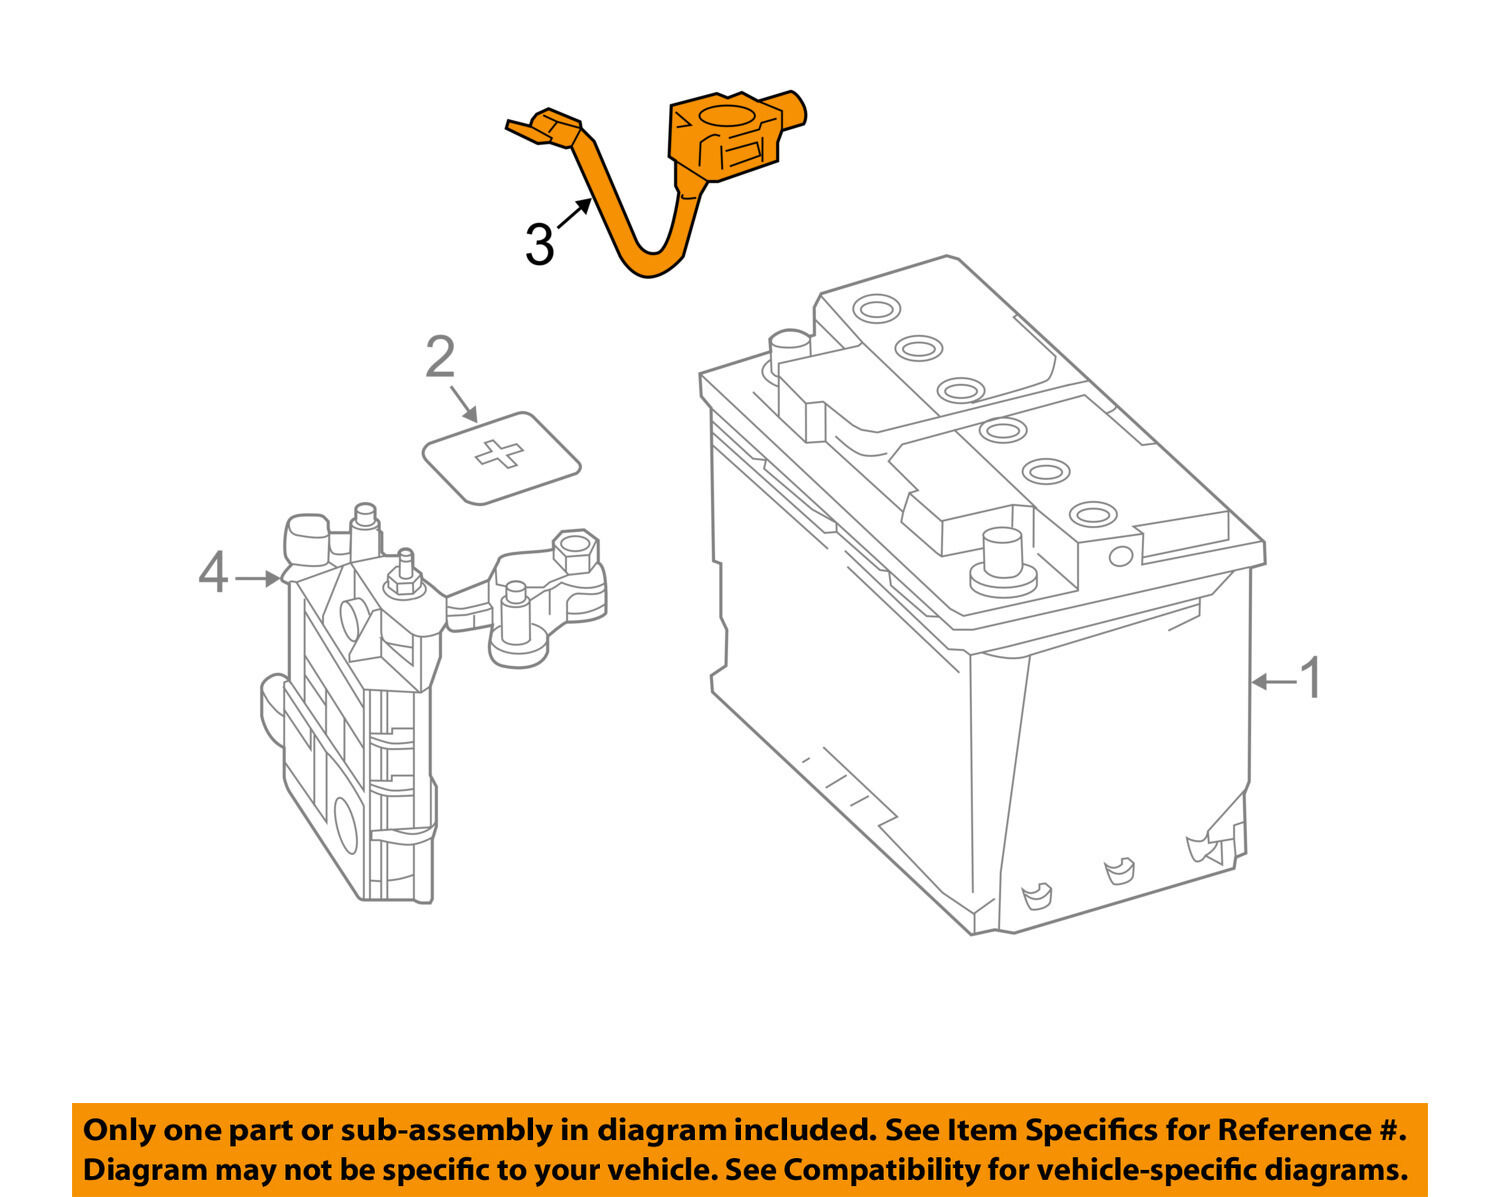 Mercedes Oem 15 17 C300 Battery Negative Cable 0009050454 12868 Fuse Diagram 1 Of 2only 2 Available